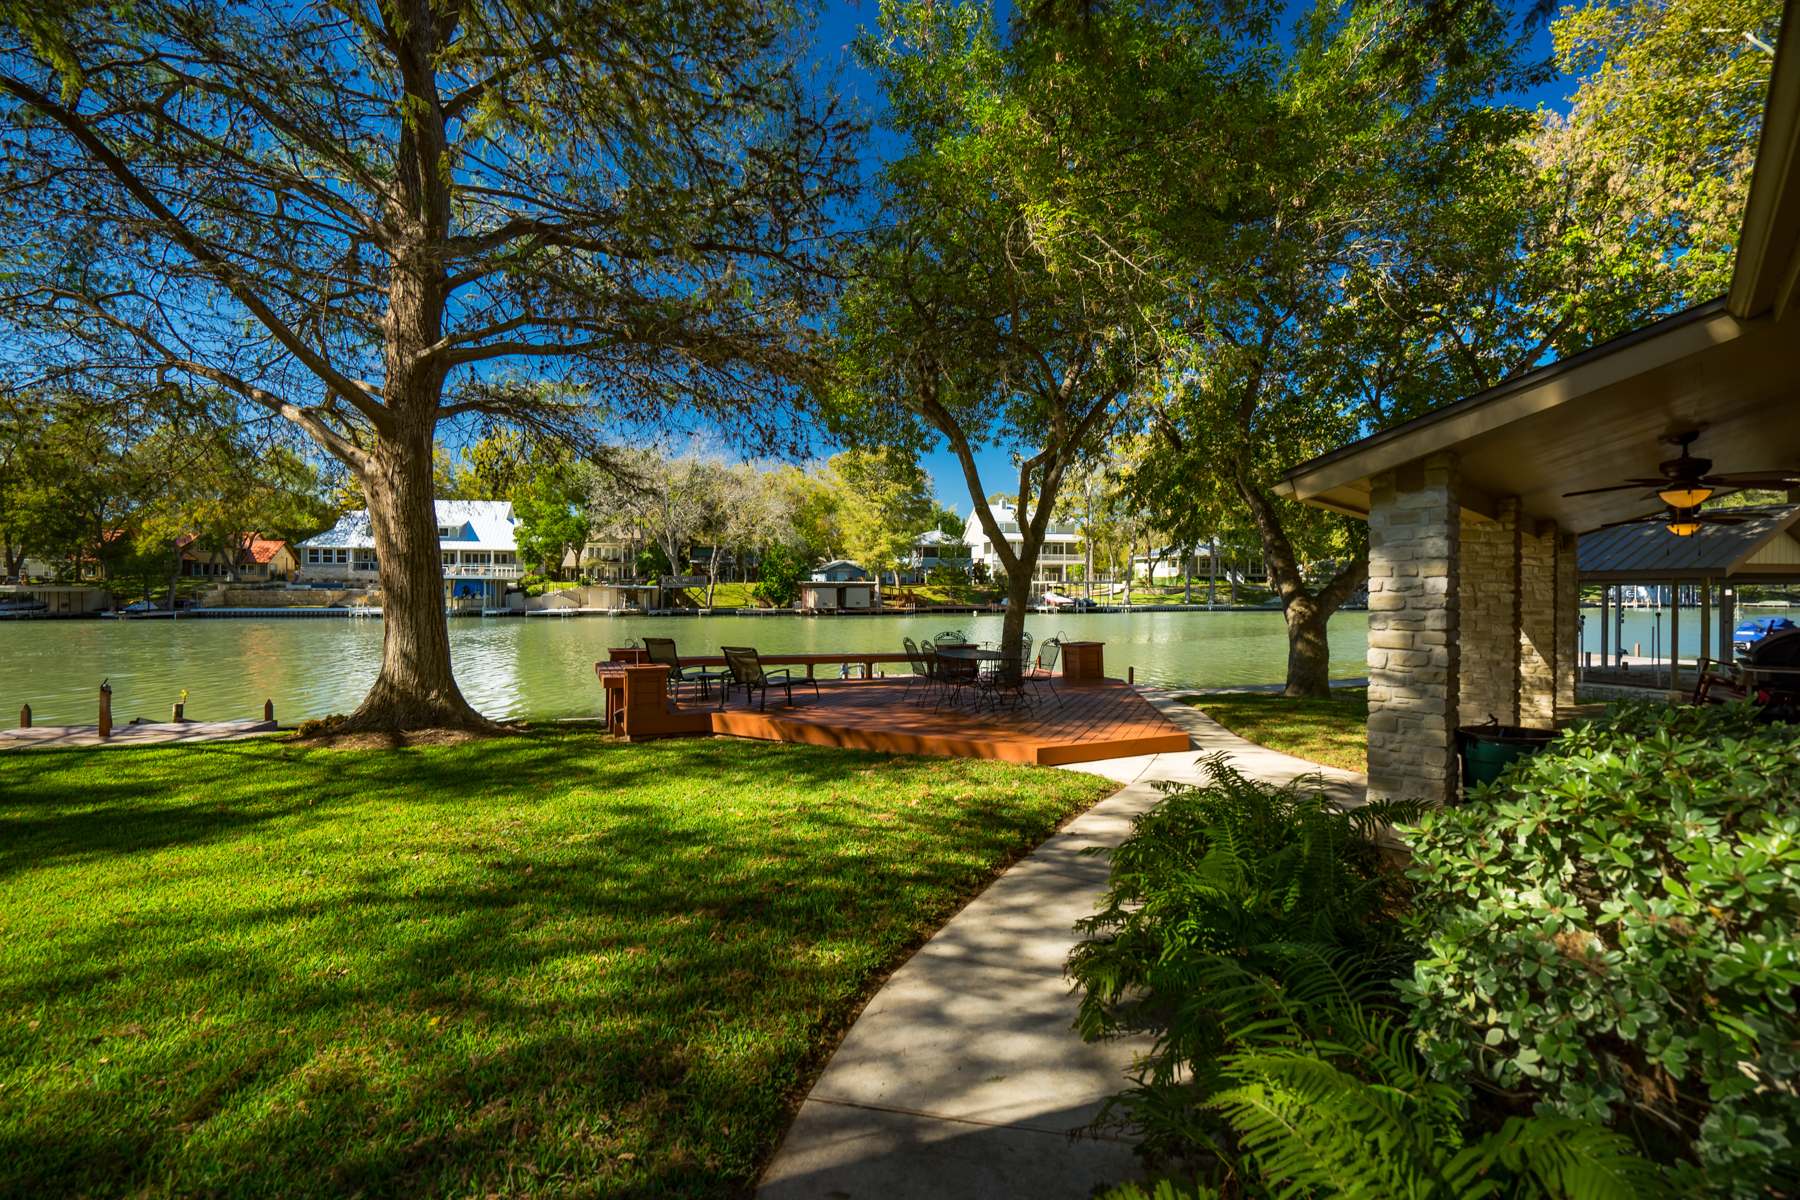 Casa Unifamiliar por un Venta en Gorgeous Waterfront Property on Lake McQueeney 484 Laguna Vista Seguin, Texas 78155 Estados Unidos